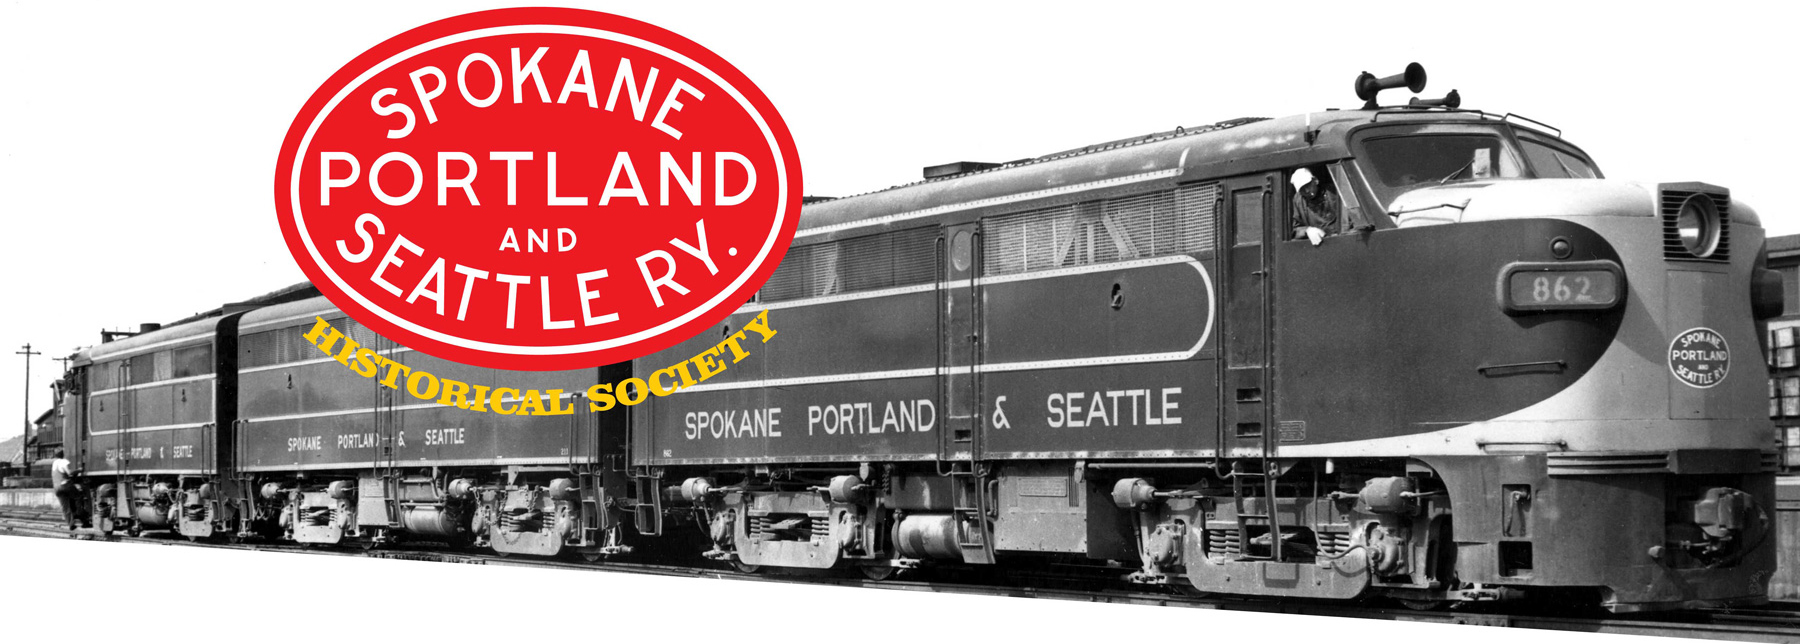 Spokane, Portland & Seattle Railway Historical Society